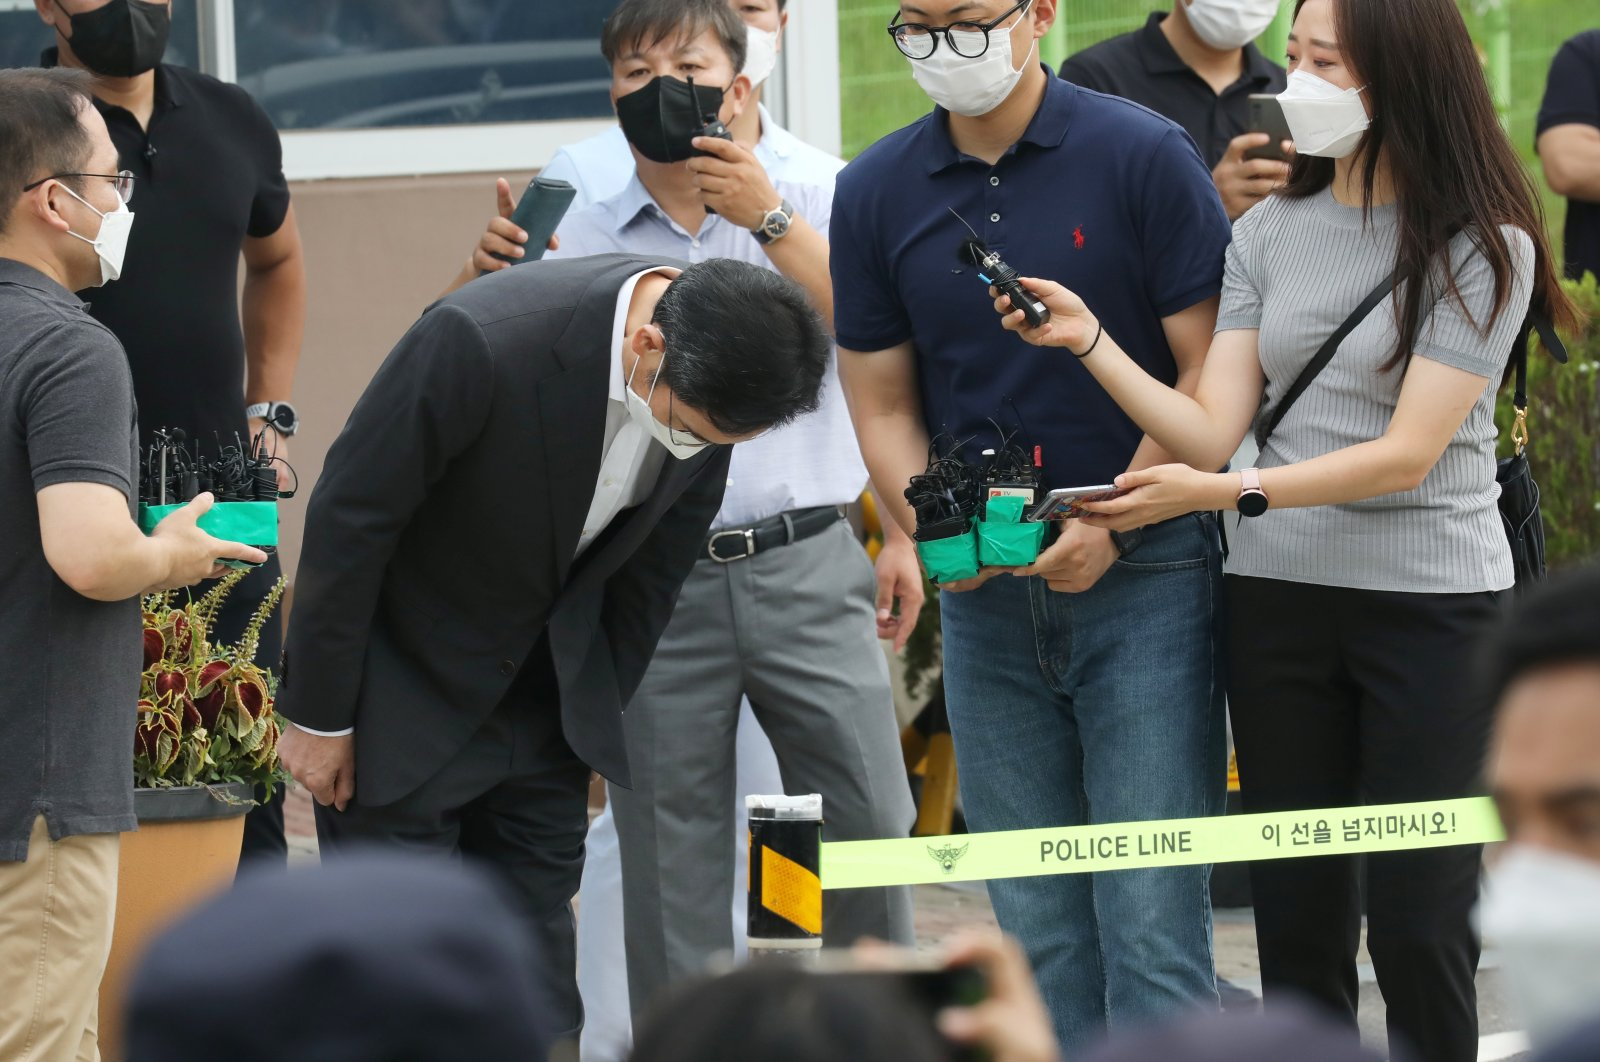 Lee Jae-yong, Samsung Electronics vice chairperson, bows as he is released on parole from Seoul Detention Center in Uiwang, South Korea, Aug. 13, 2021. (Reuters Photo)